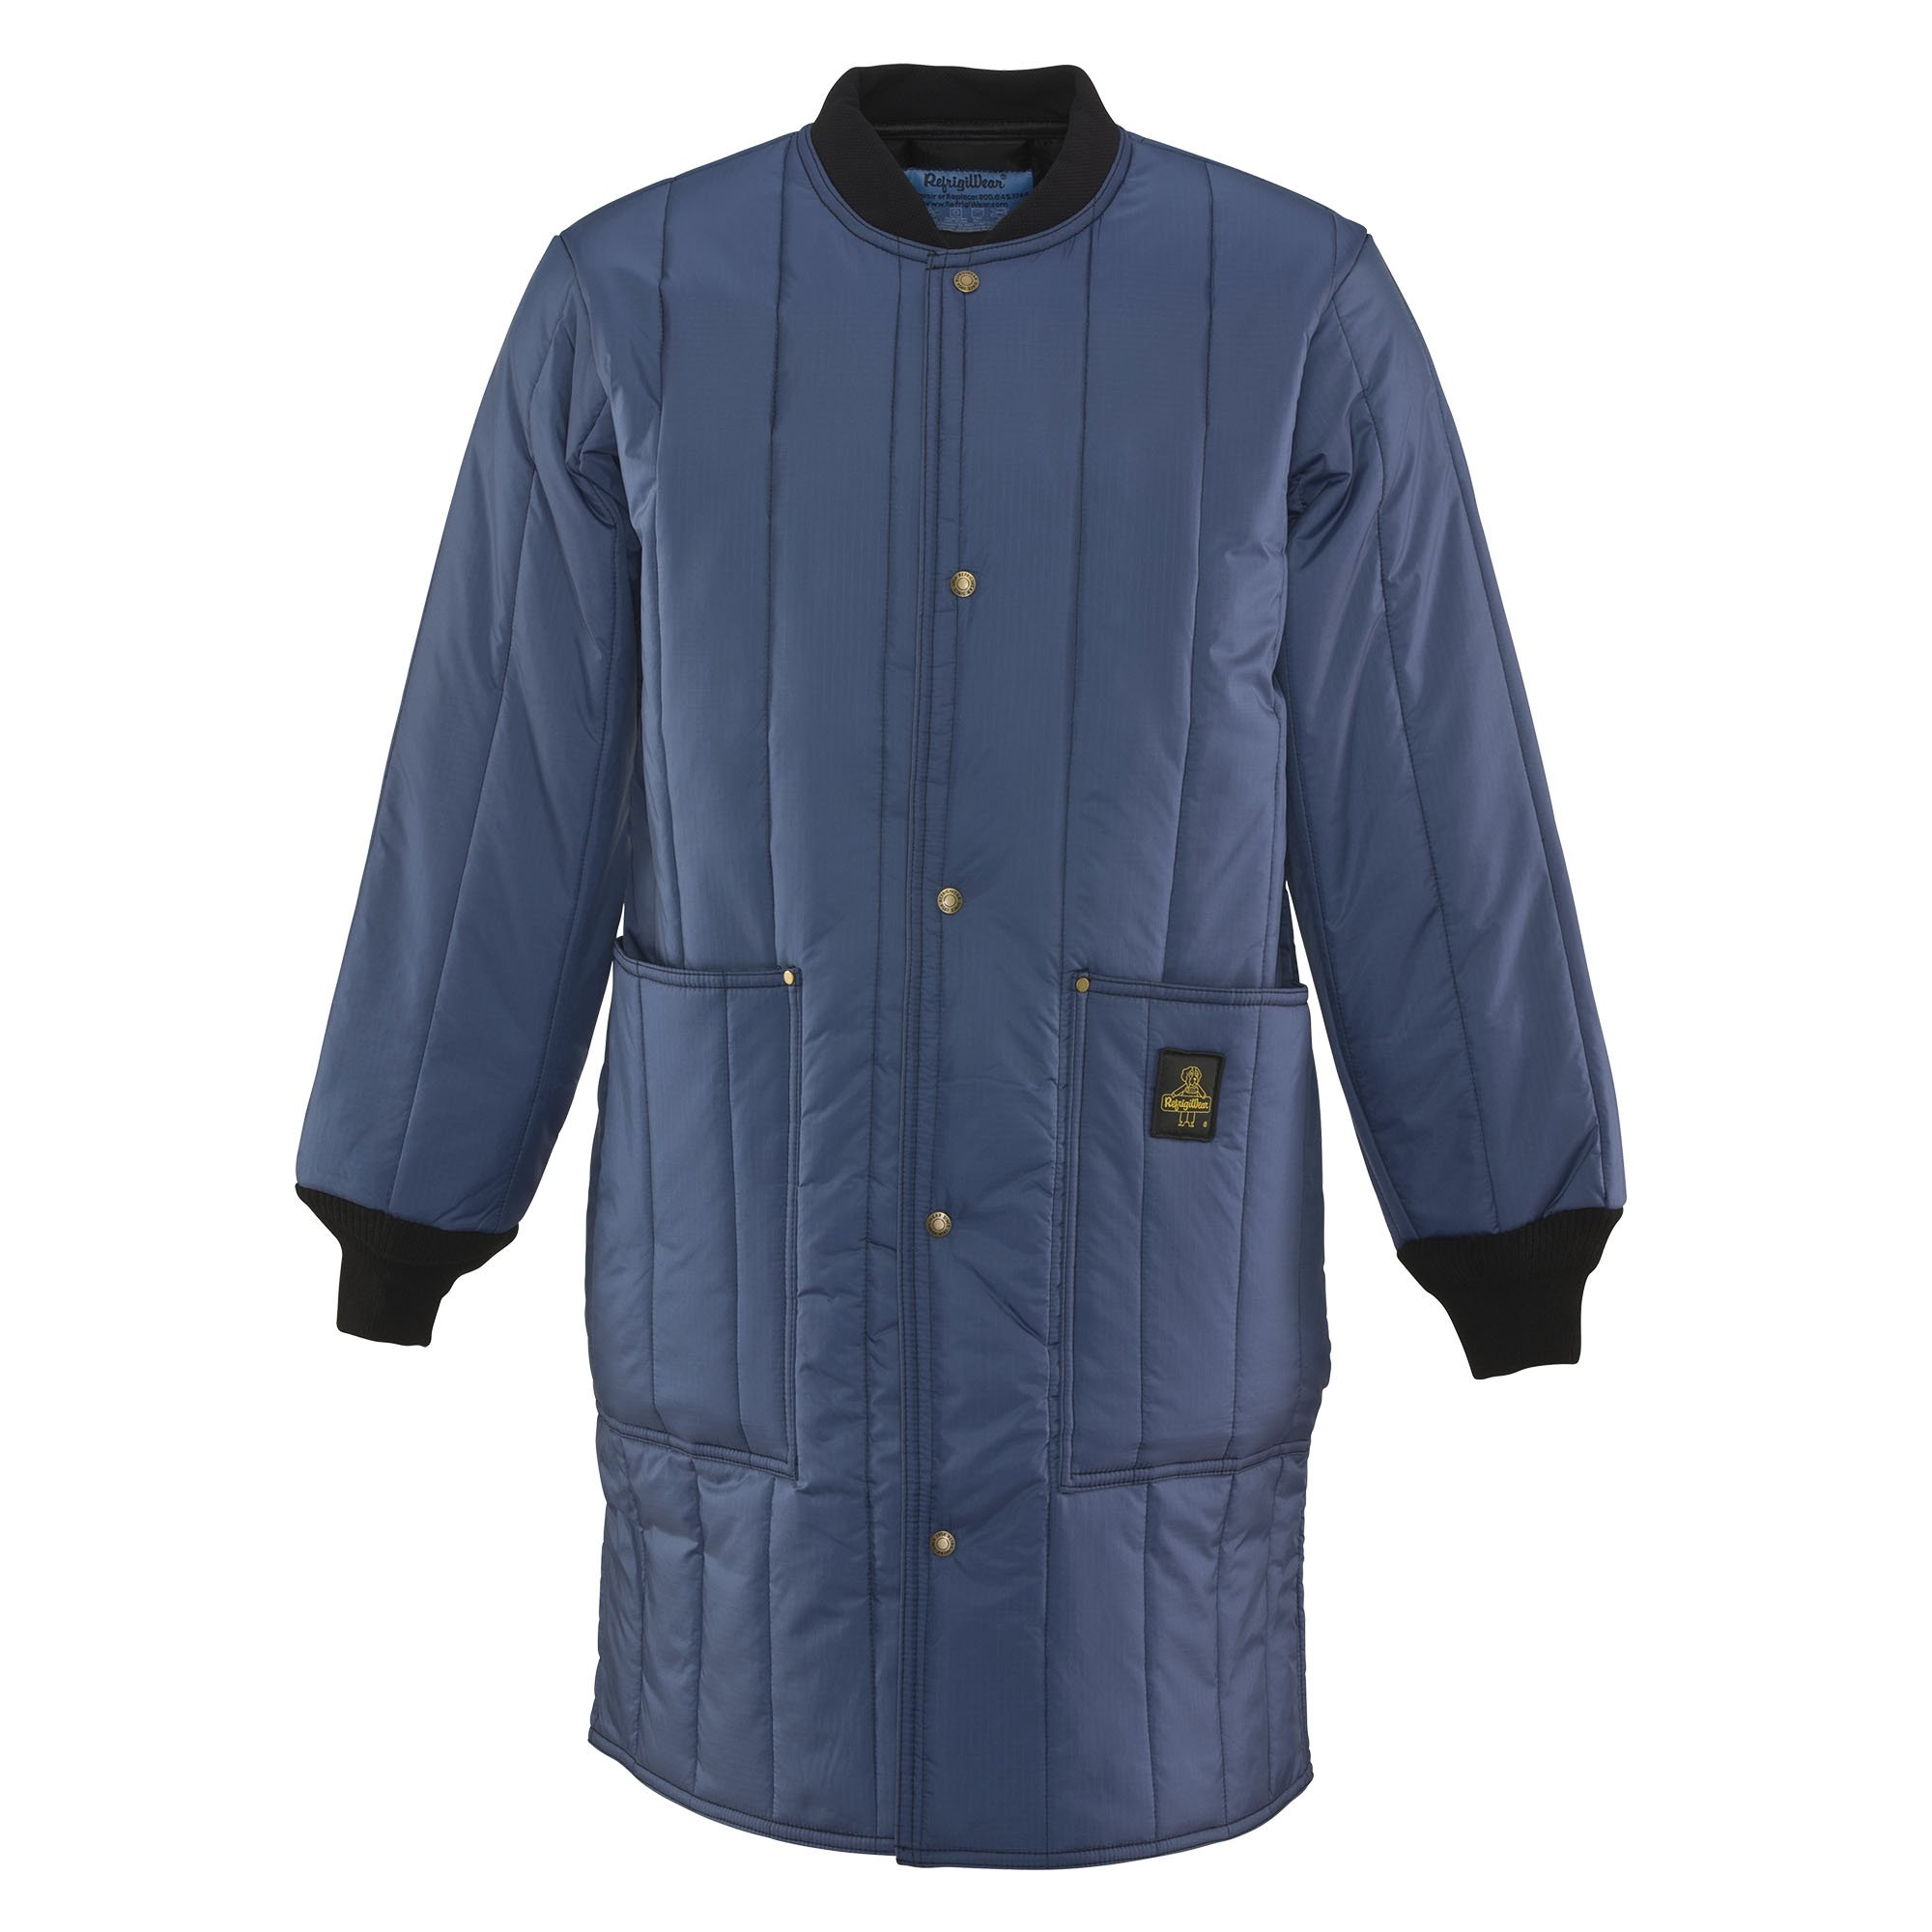 Refrigiwear Men's Insulated Cooler Wear Frock Liner Workwear Coat (Navy Blue, 2XL) by Refrigiwear